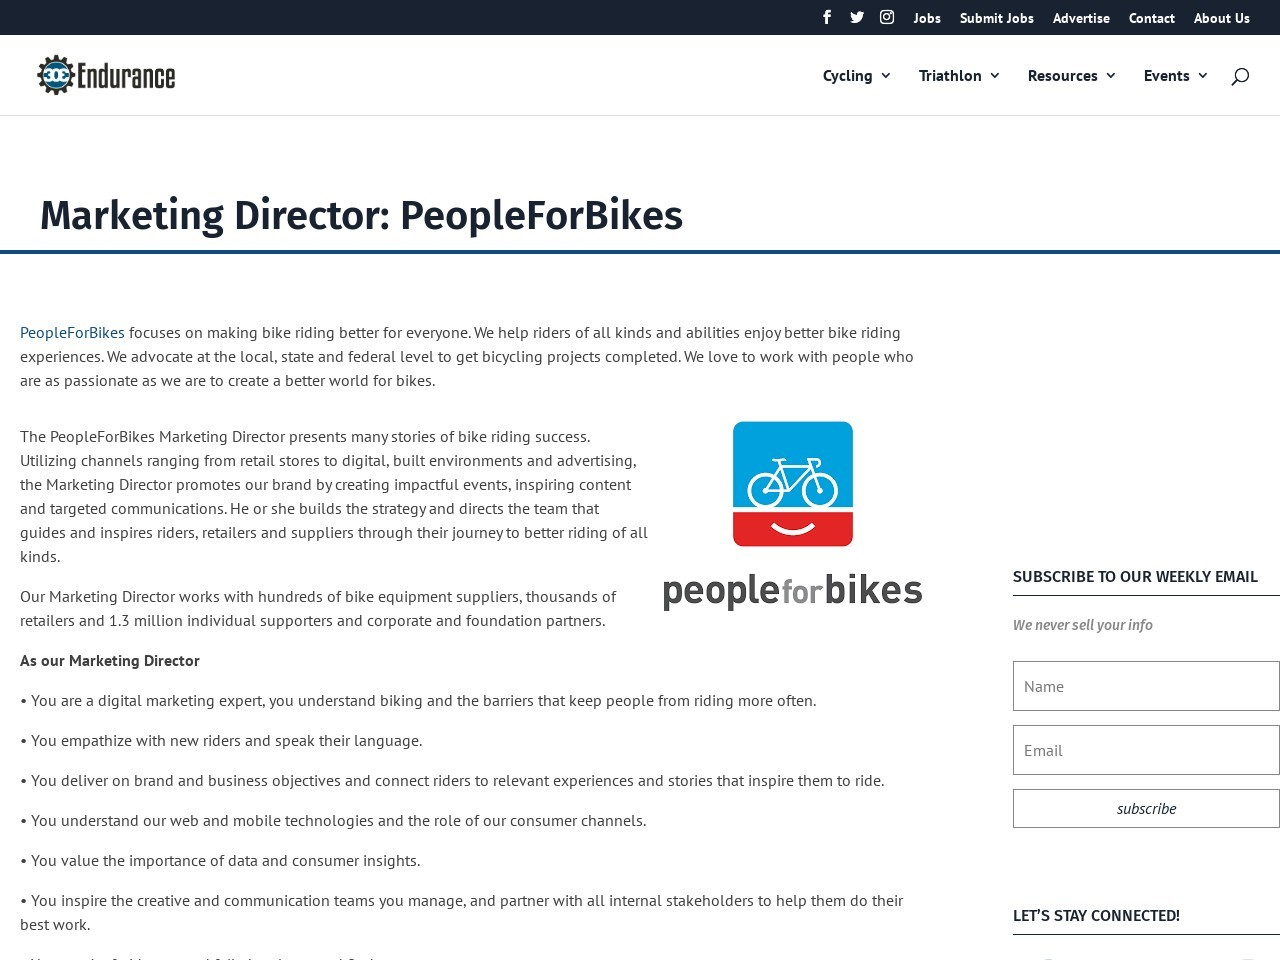 Marketing Director: PeopleForBikes